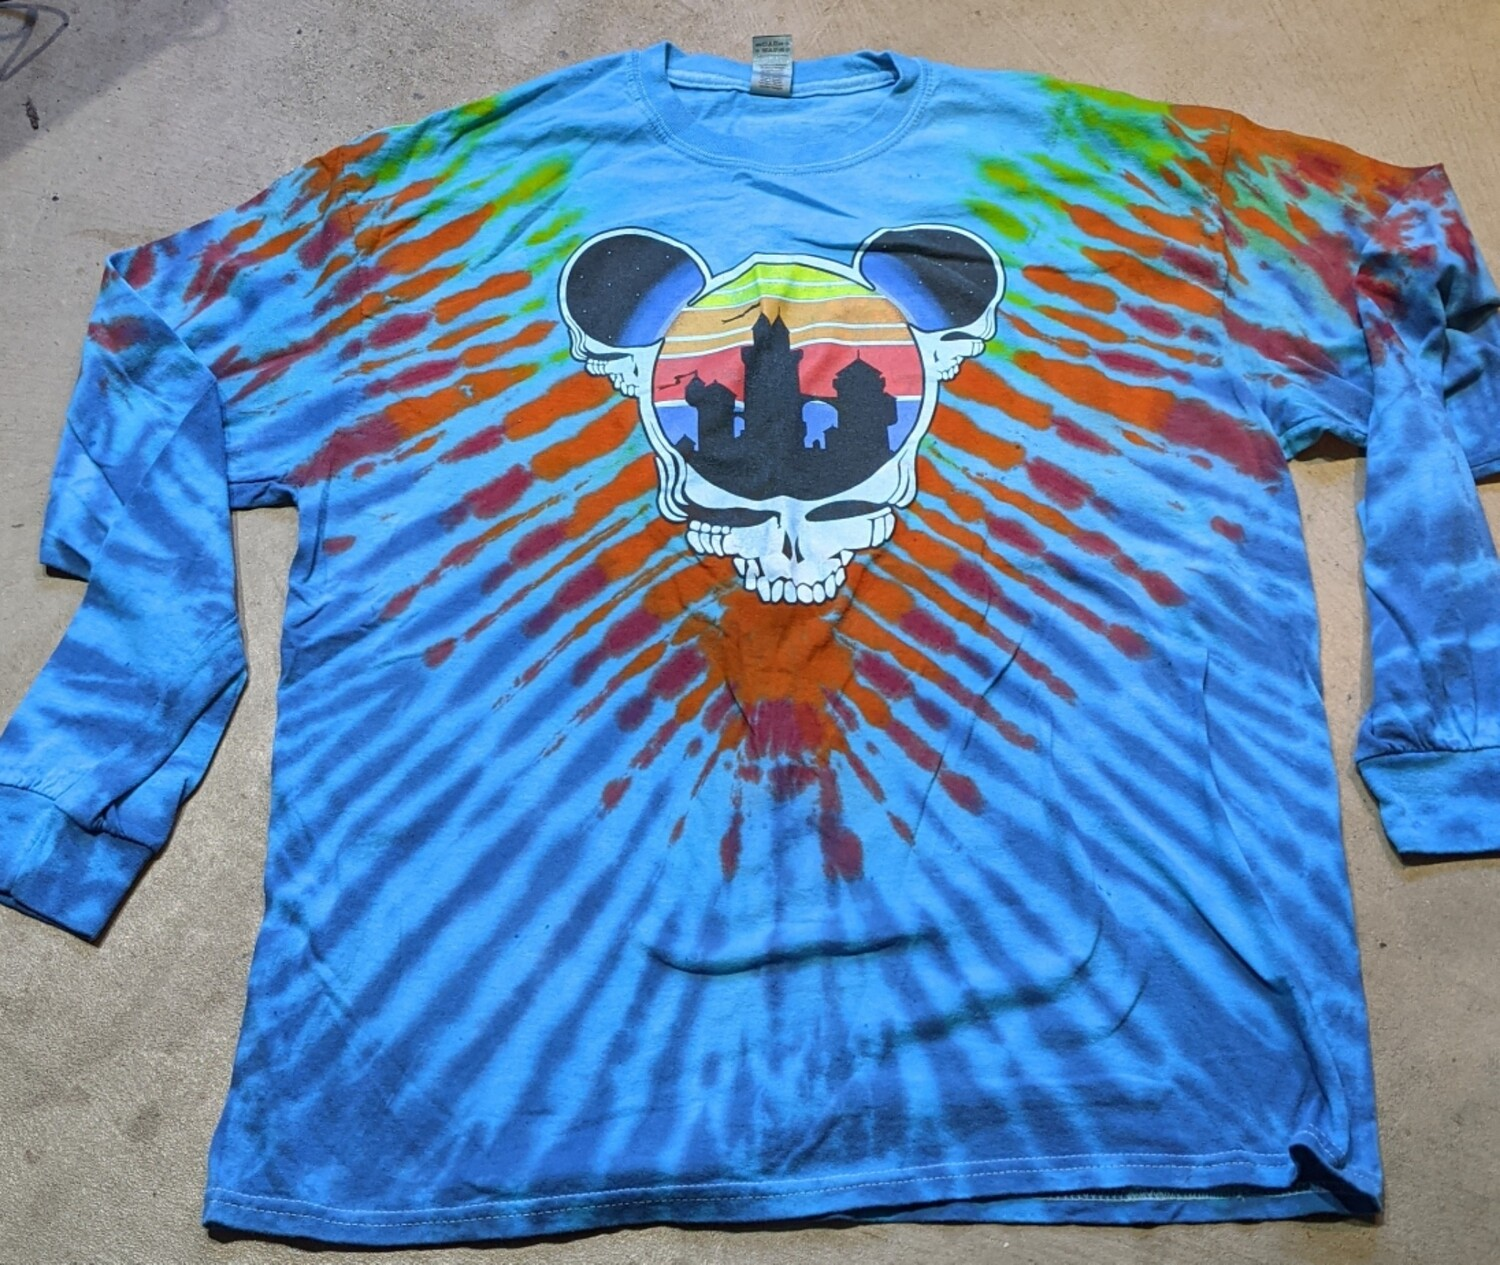 Adult XL LONG SLEEVE Tie Dye (blue) Steal Your Ears T-Shirt